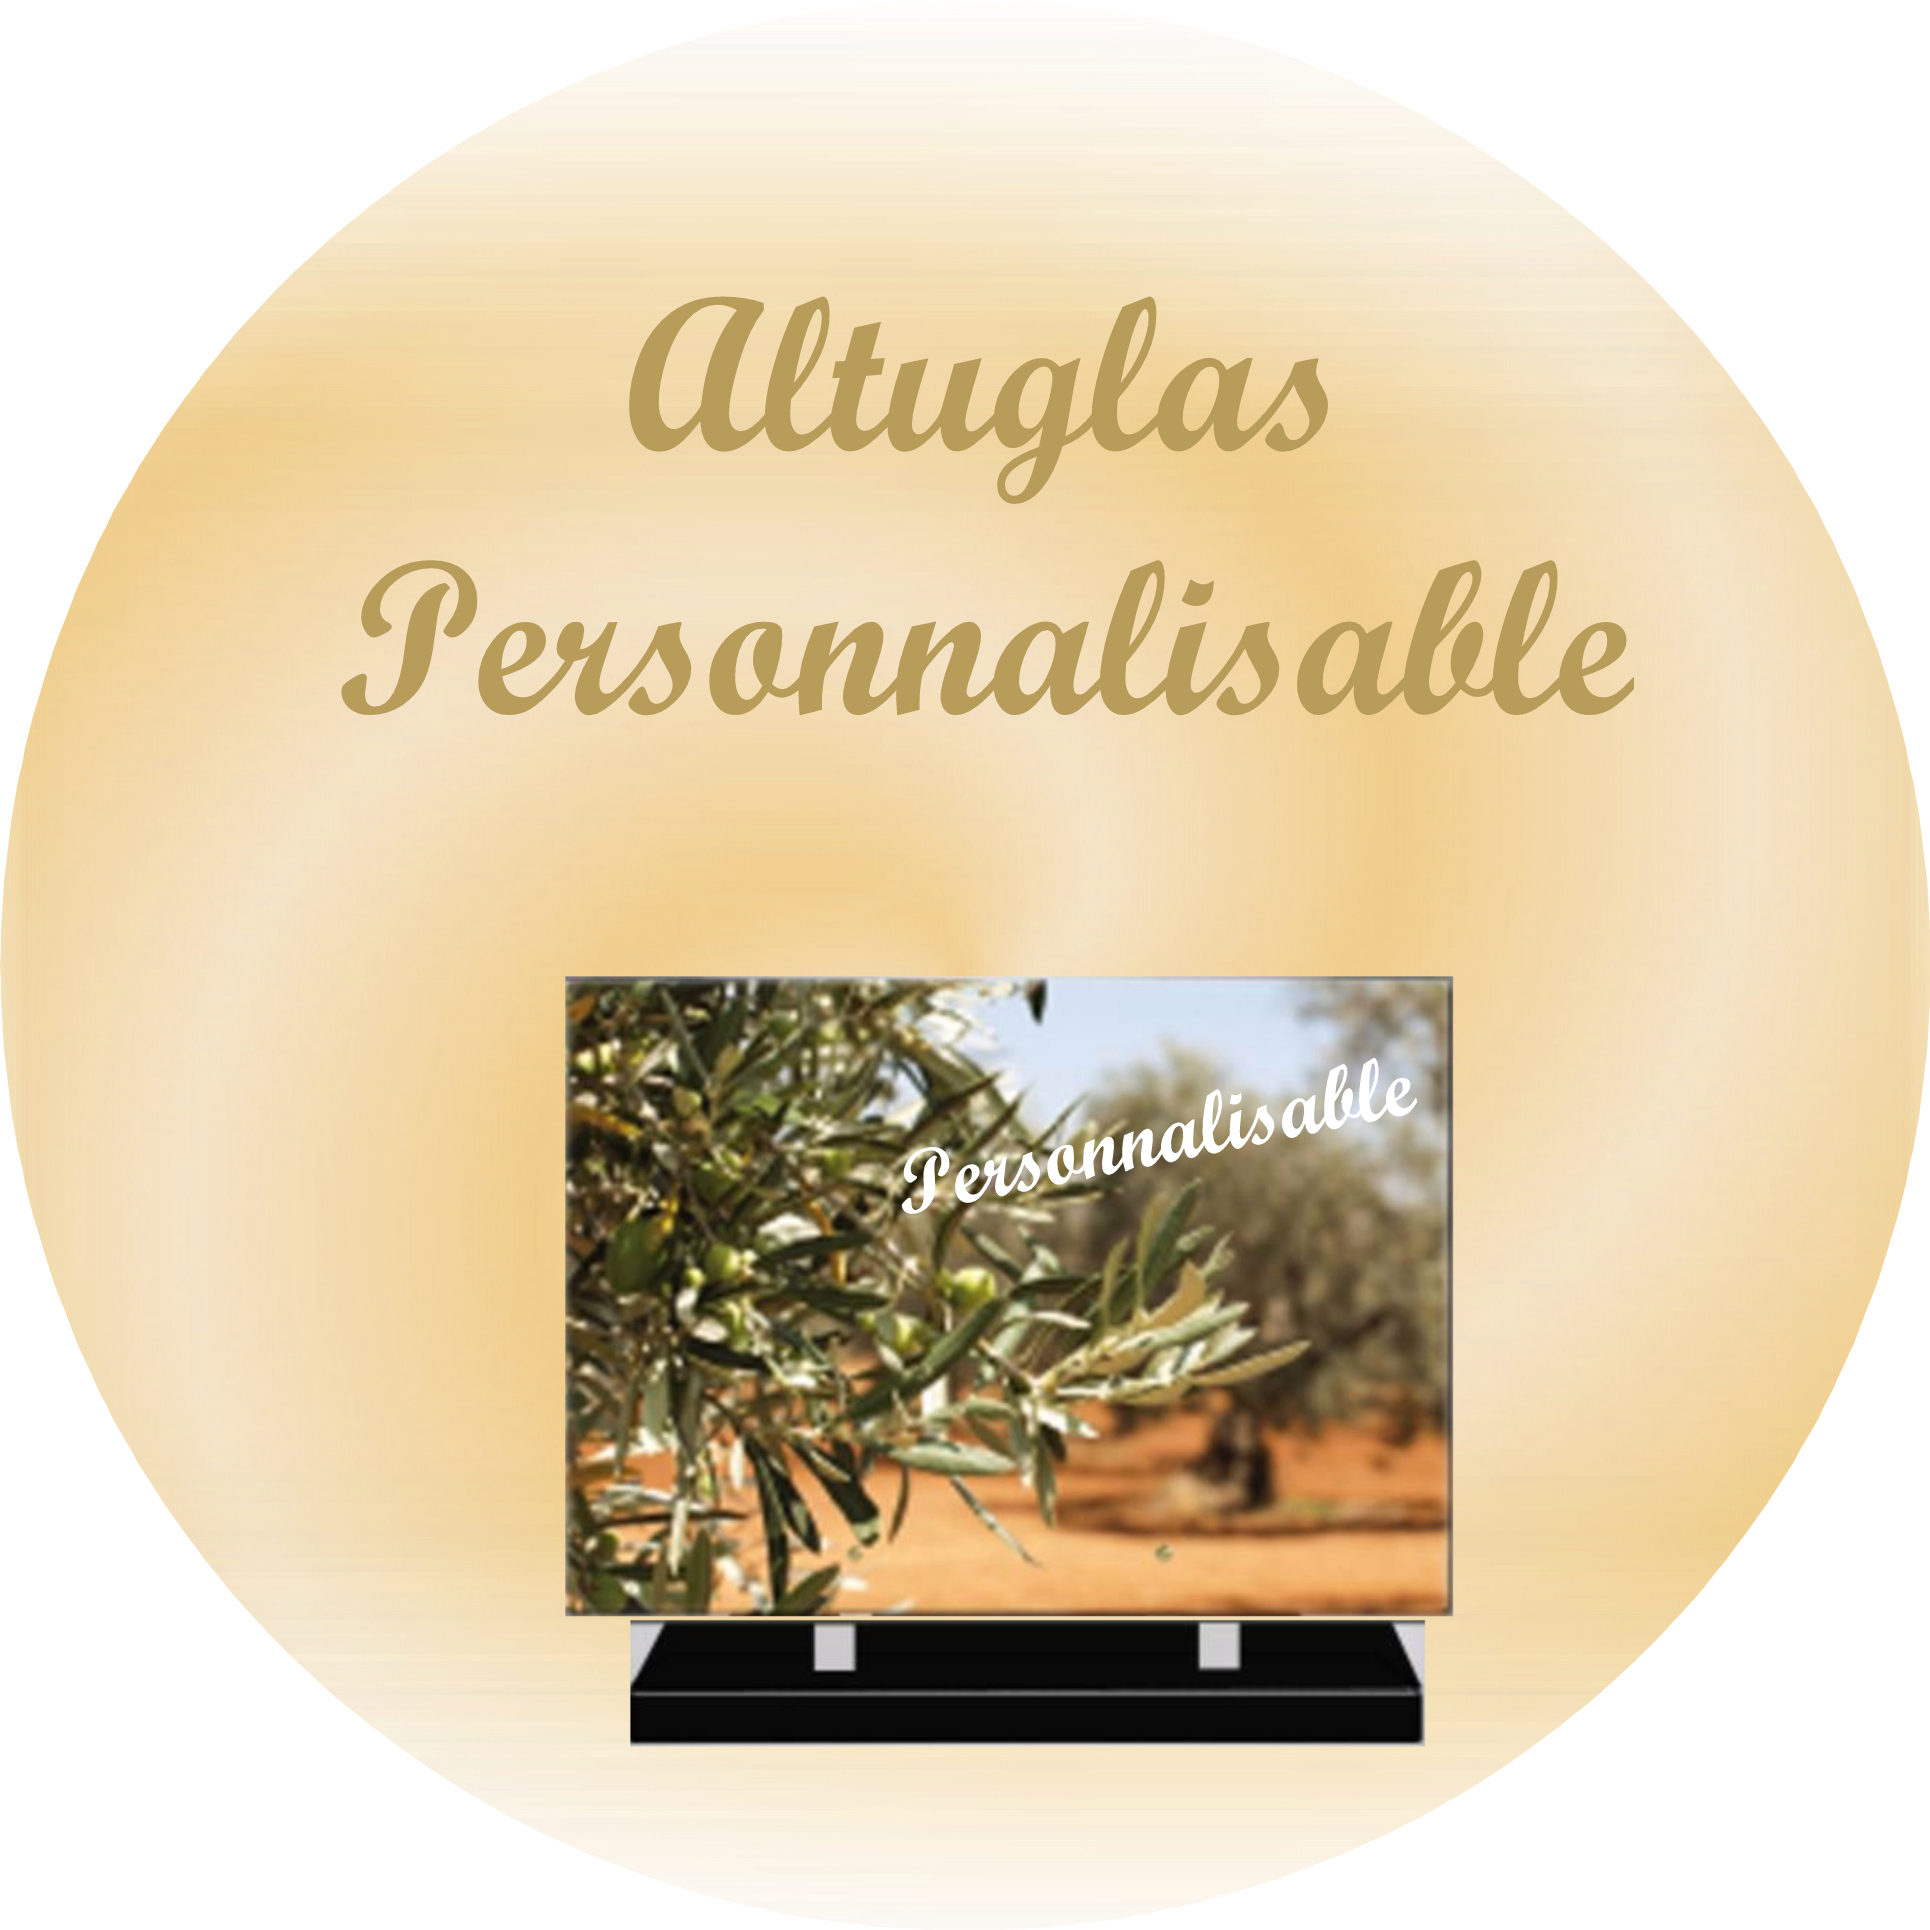 PLAQUES FUNERAIRES MODERNES PERSONNALISABLES RECTANGLE AMPLIER